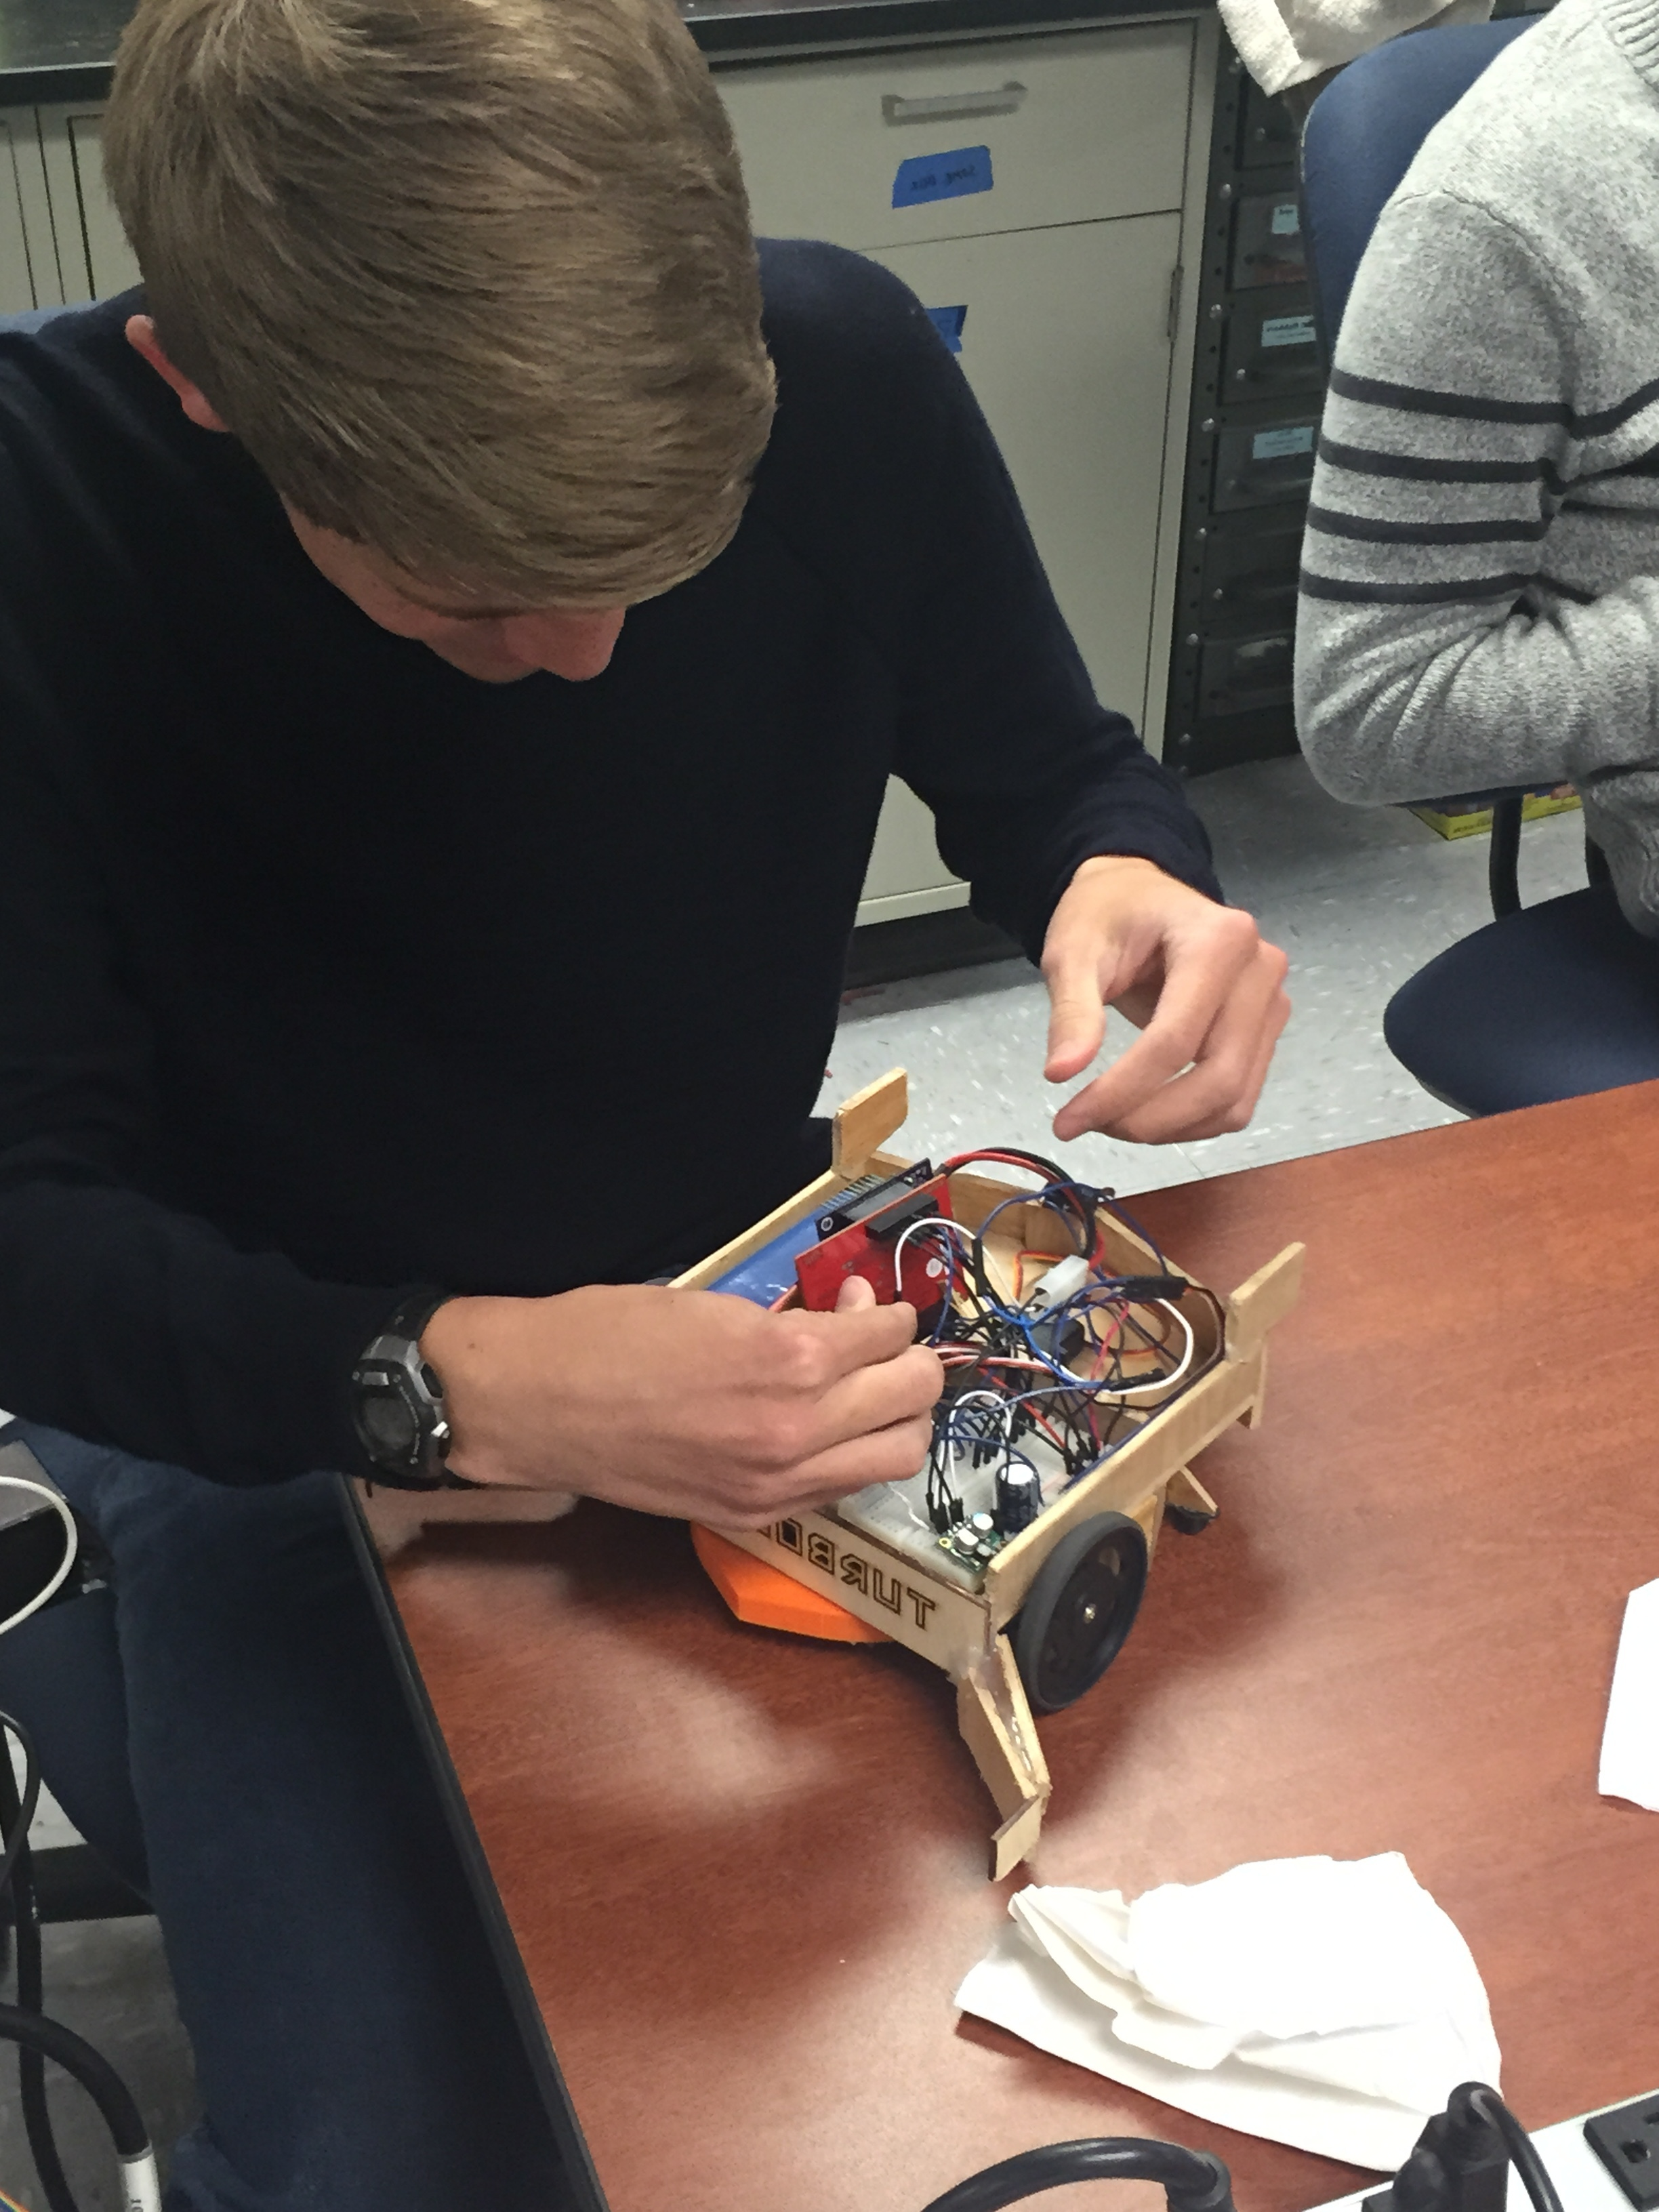 Turbolifts member Mark working on Robot